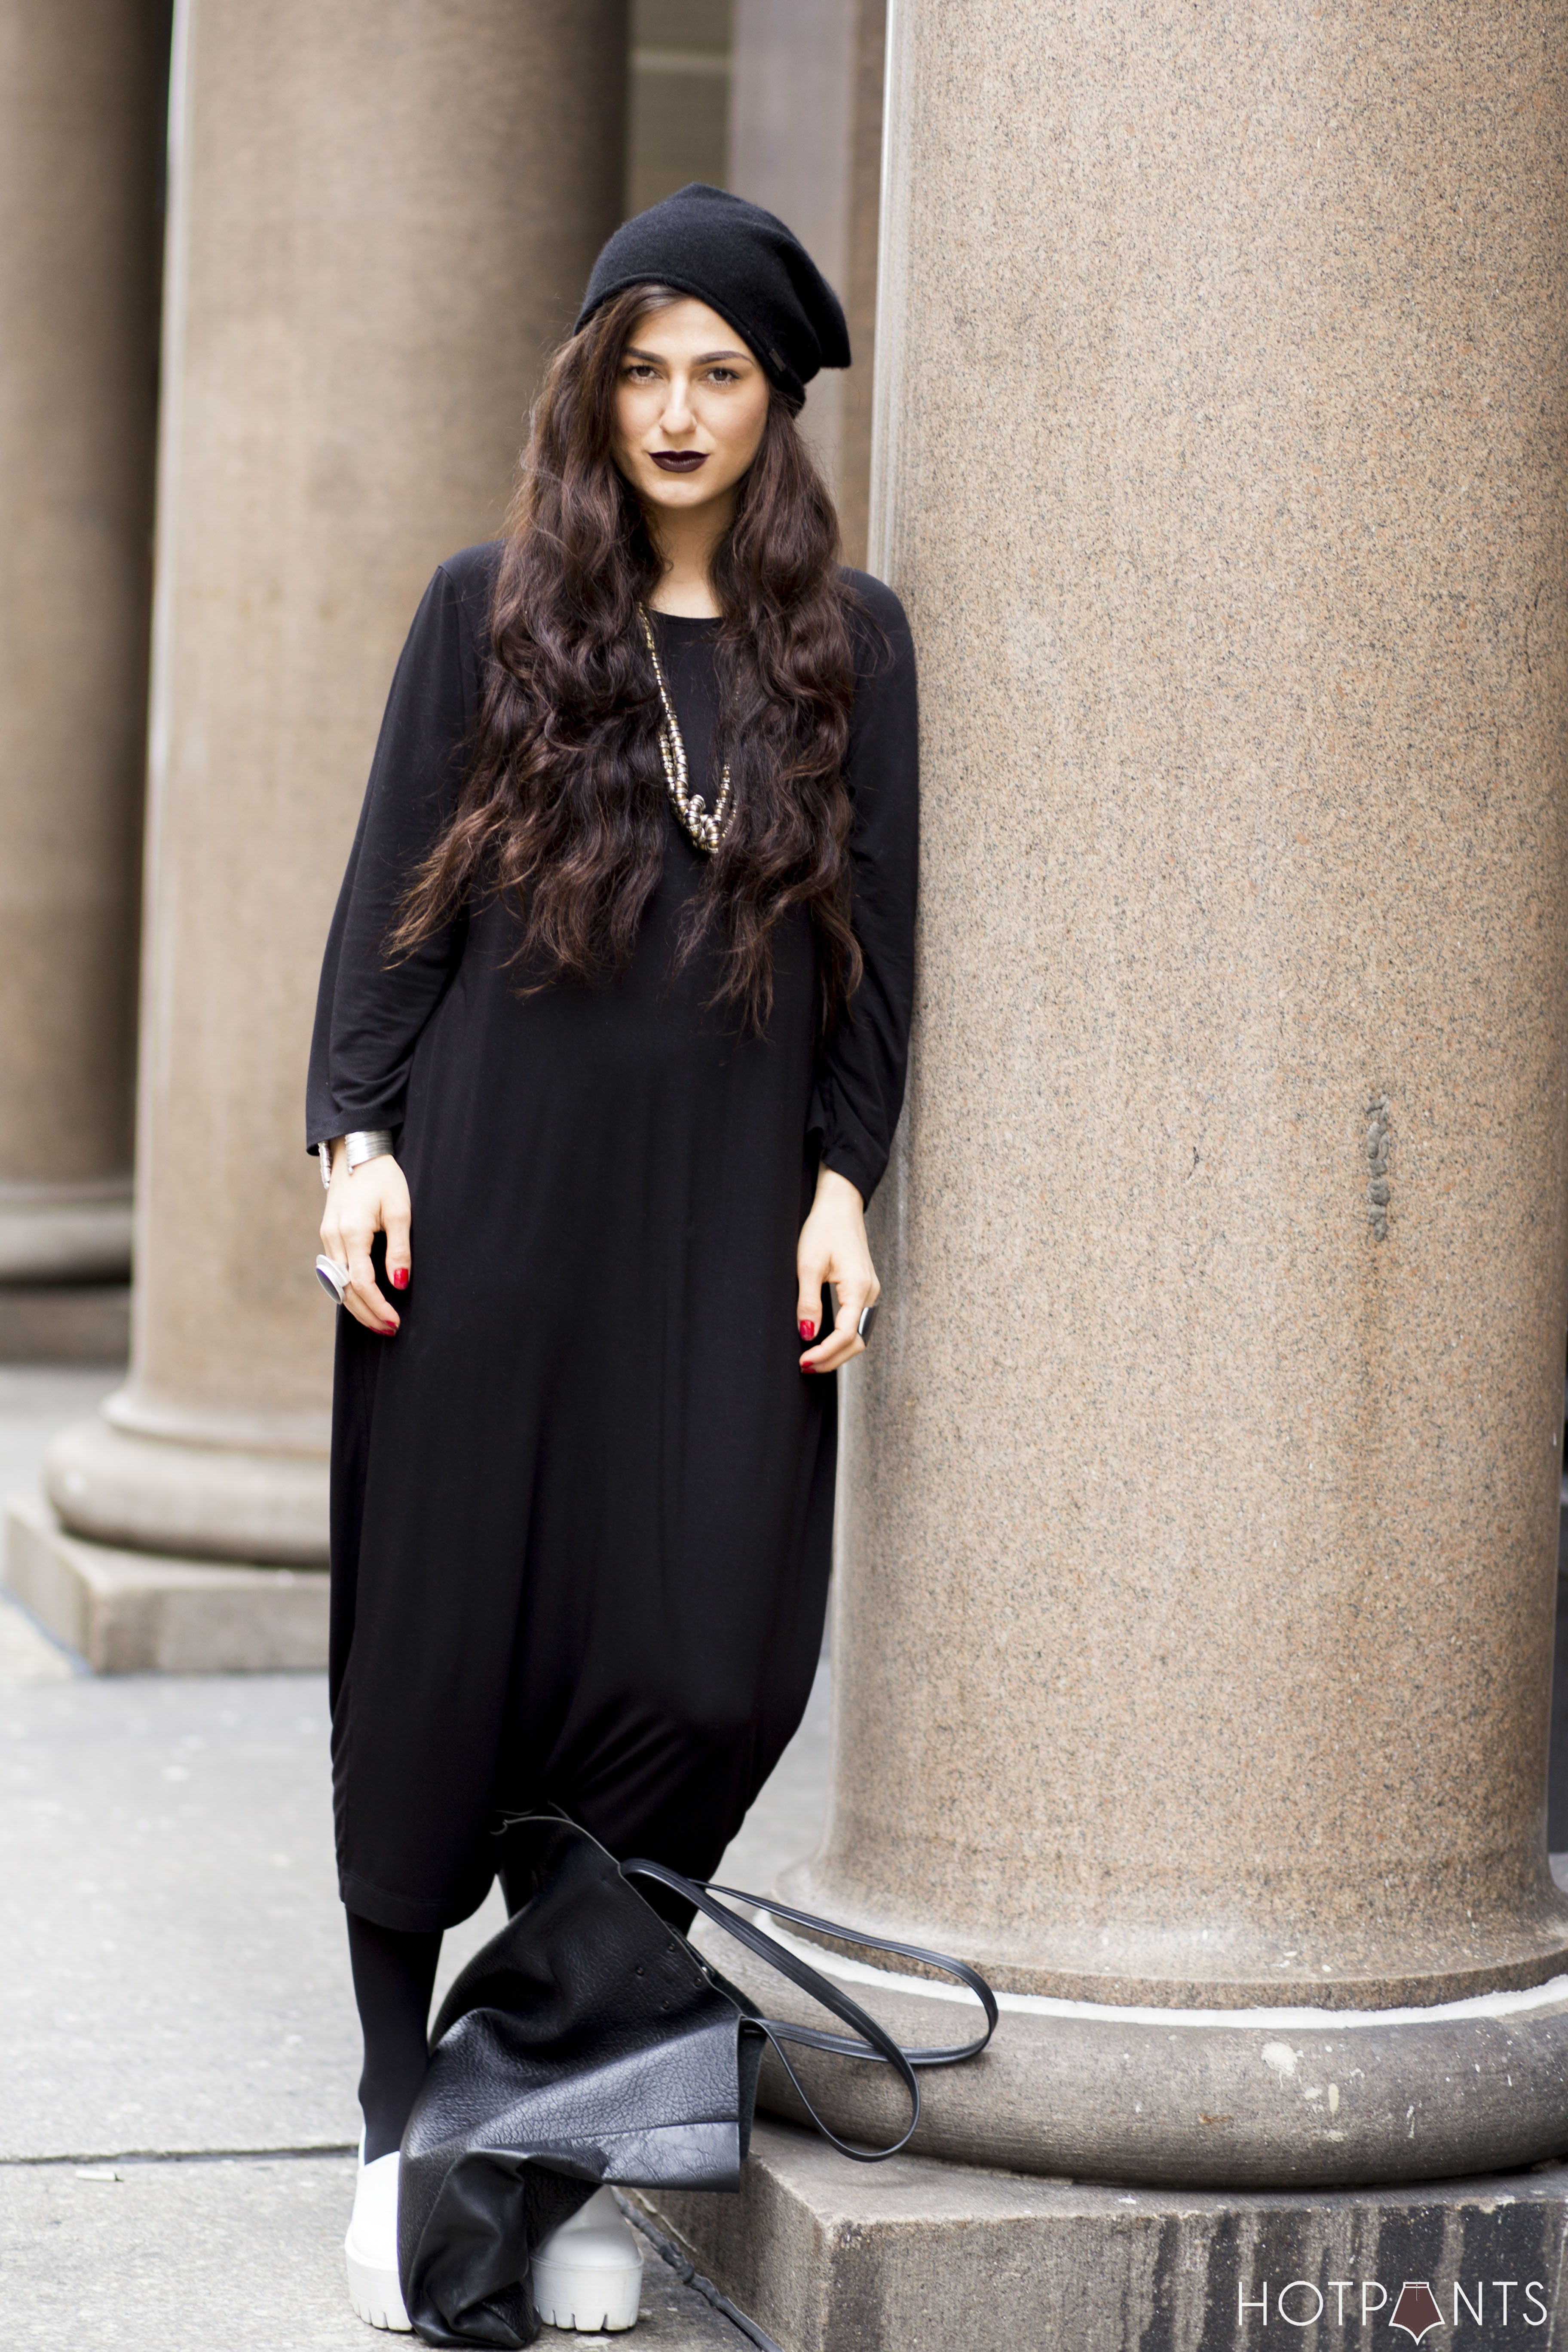 Wednesday Adams Costume Long Wavy Hair Black Lipstick